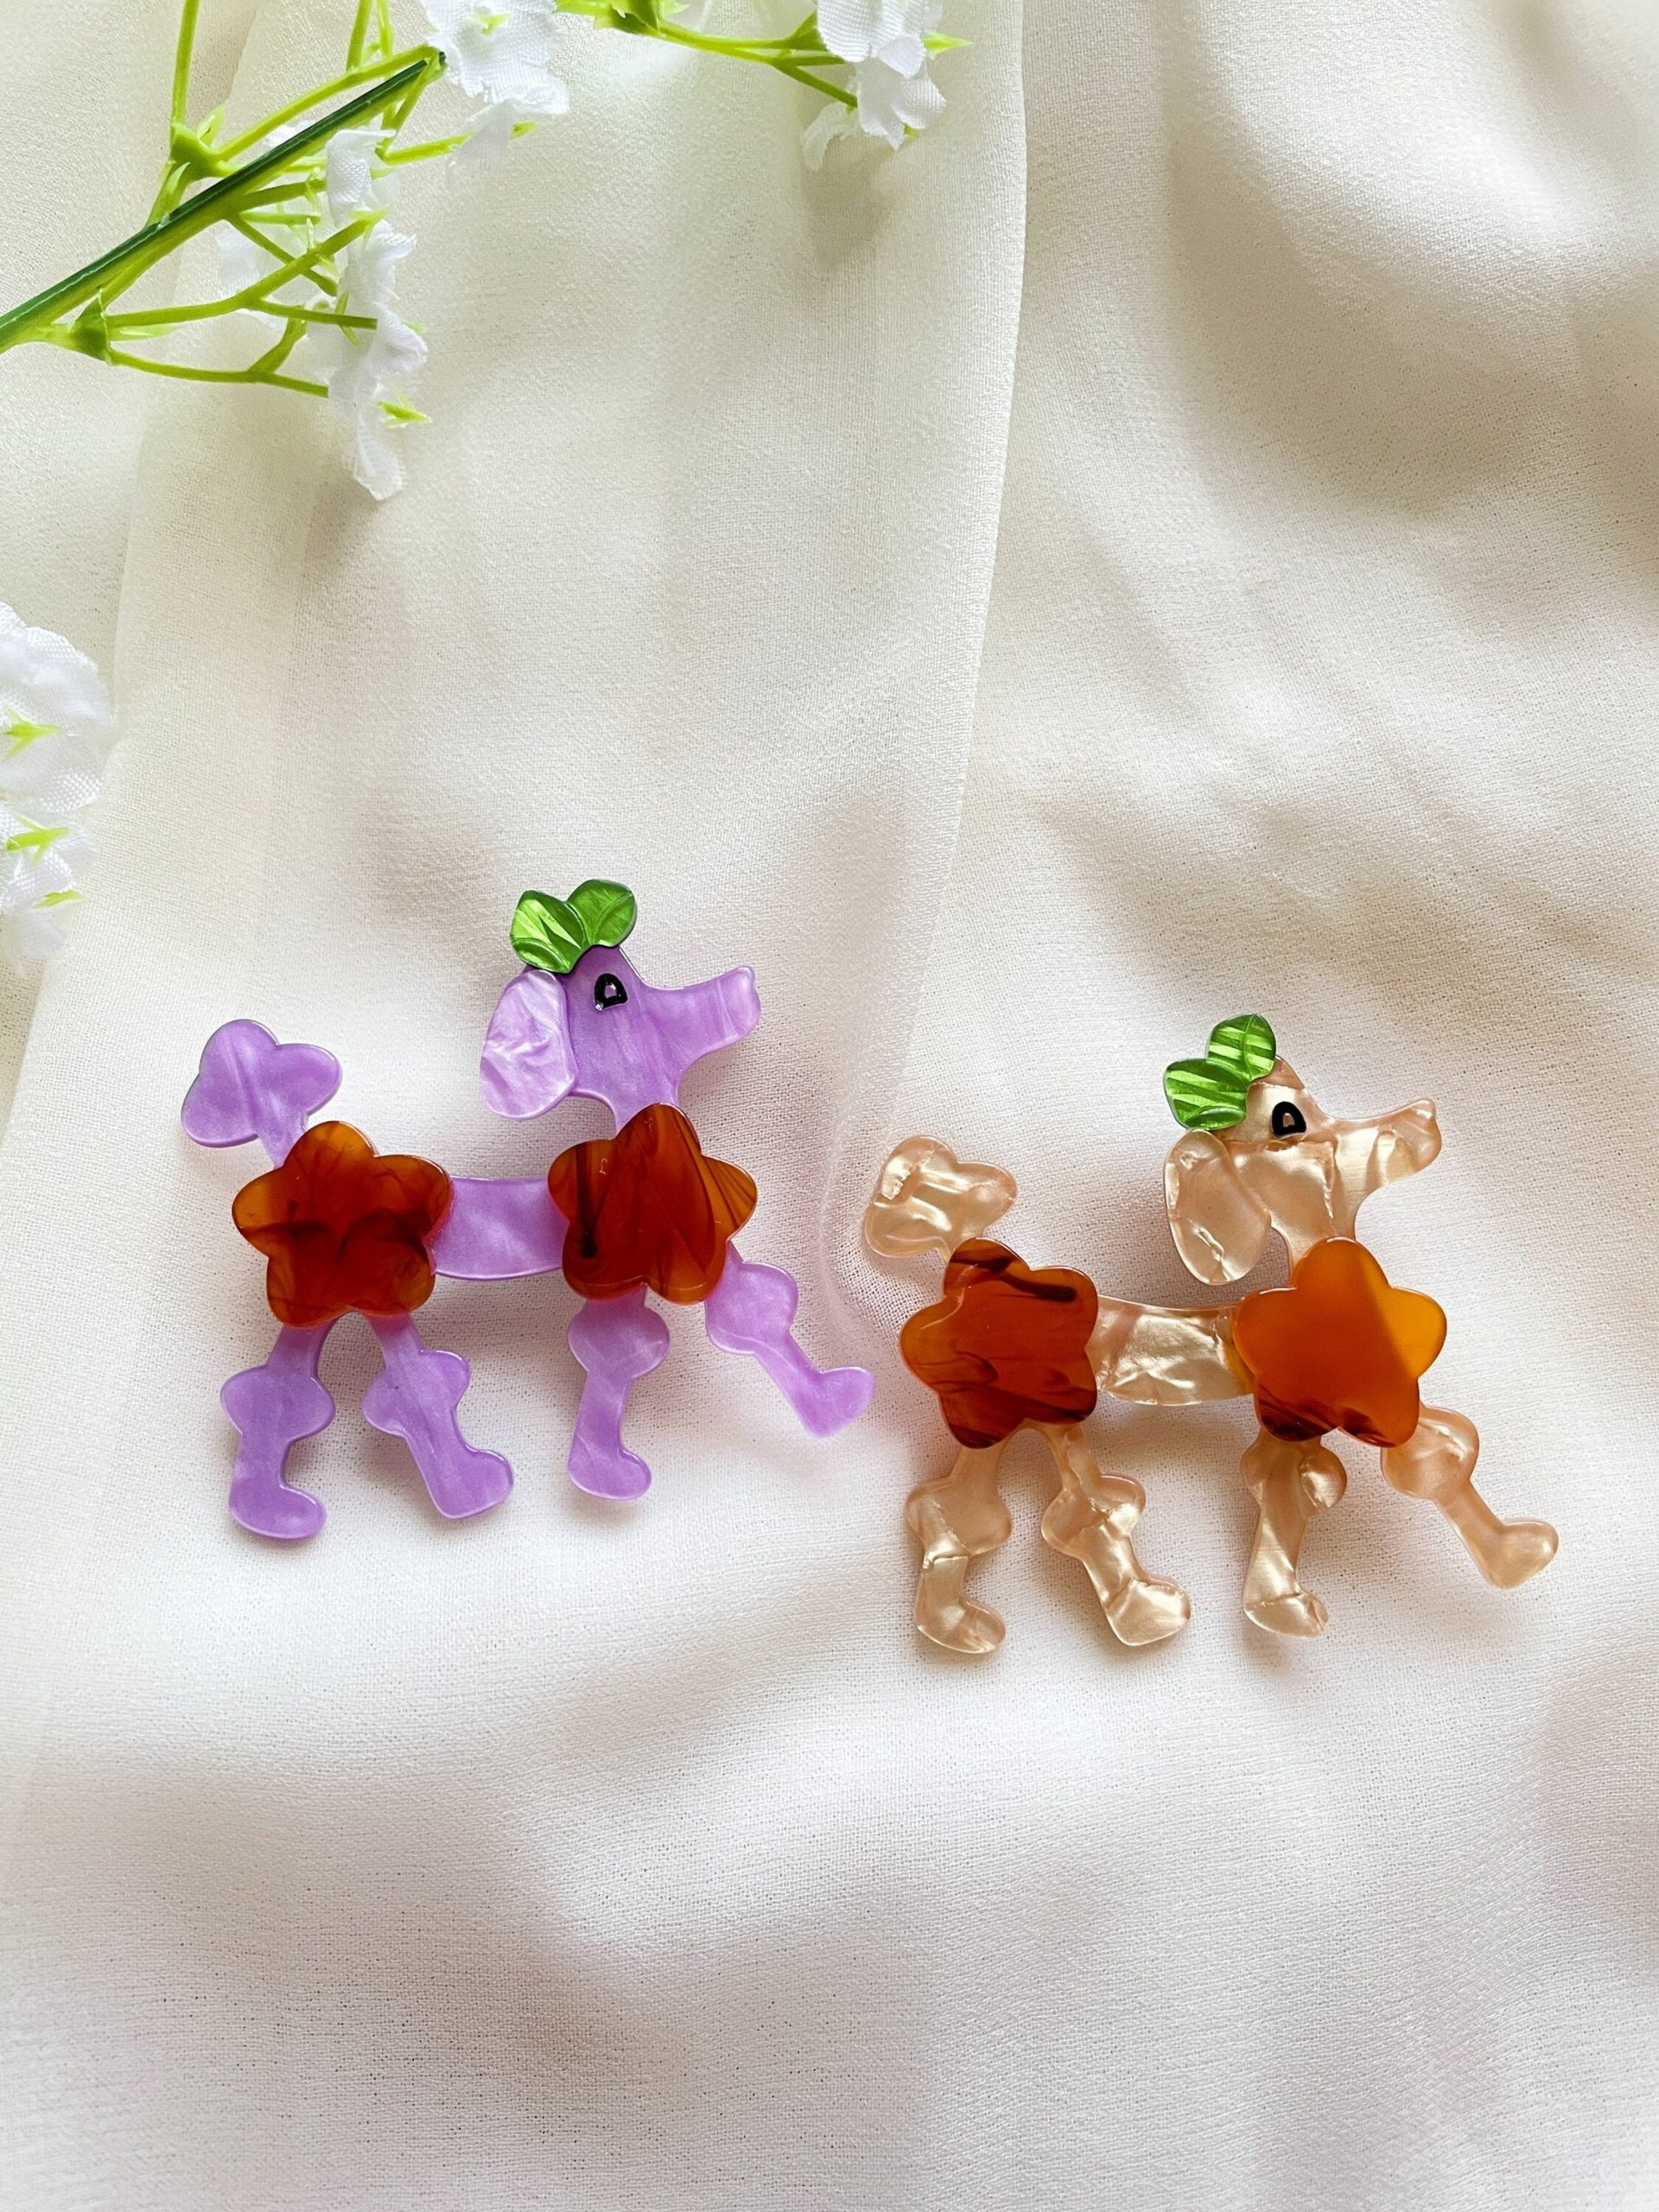 Poodle Dog Acetate Brooch   Glitter Colourful Cloth Pin Shinny Bright Oversize For Casual Wear Chic Pop Kawaii